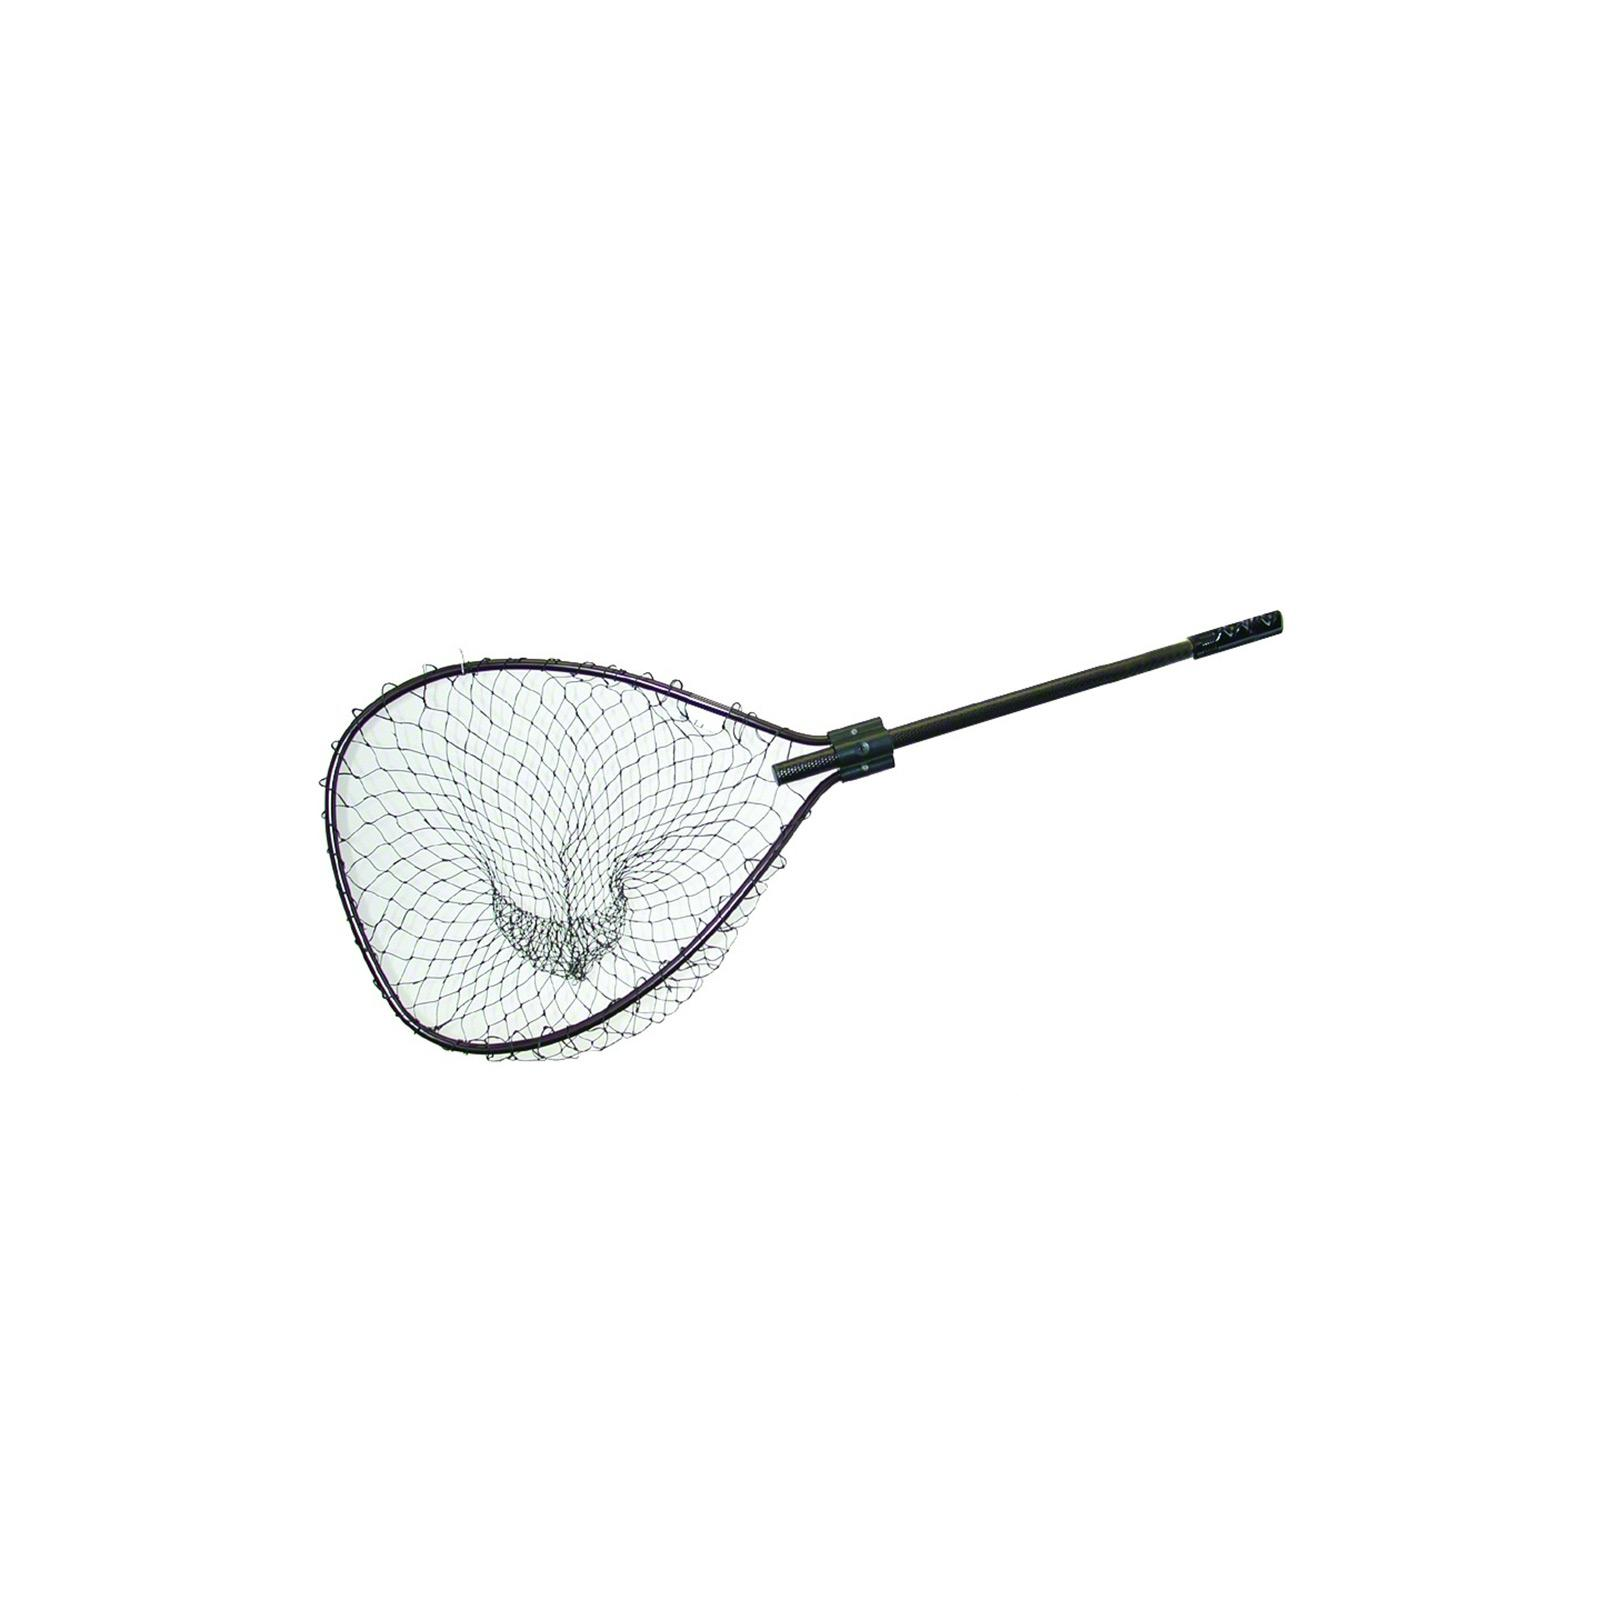 "Cumings Bass Tournament Net 17""x21"" Bow 24"" Length 24"" De..."